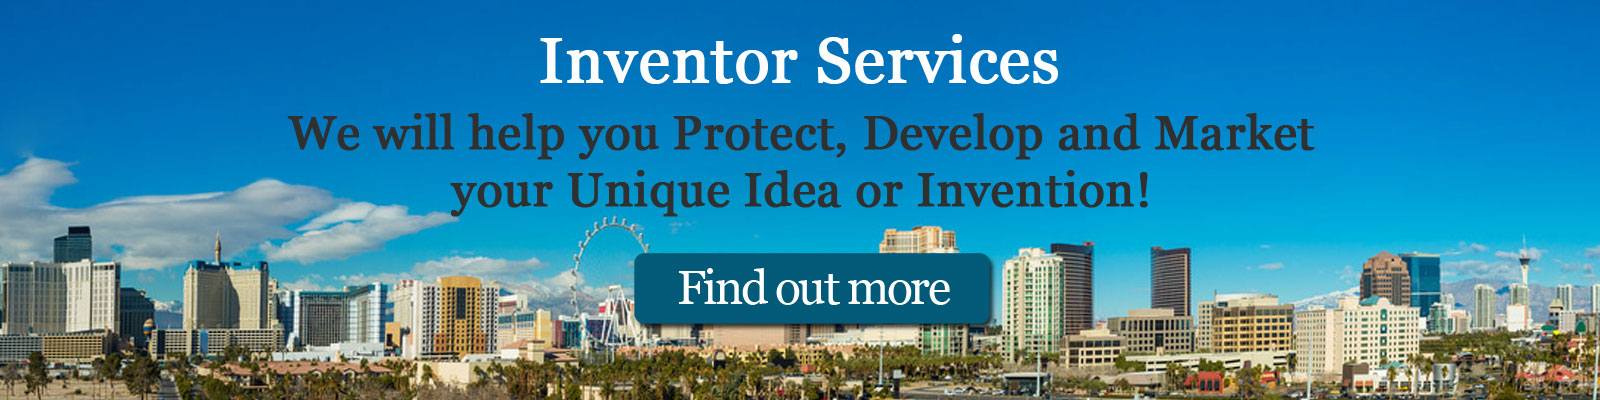 Inventor Services from Mars Rising Network